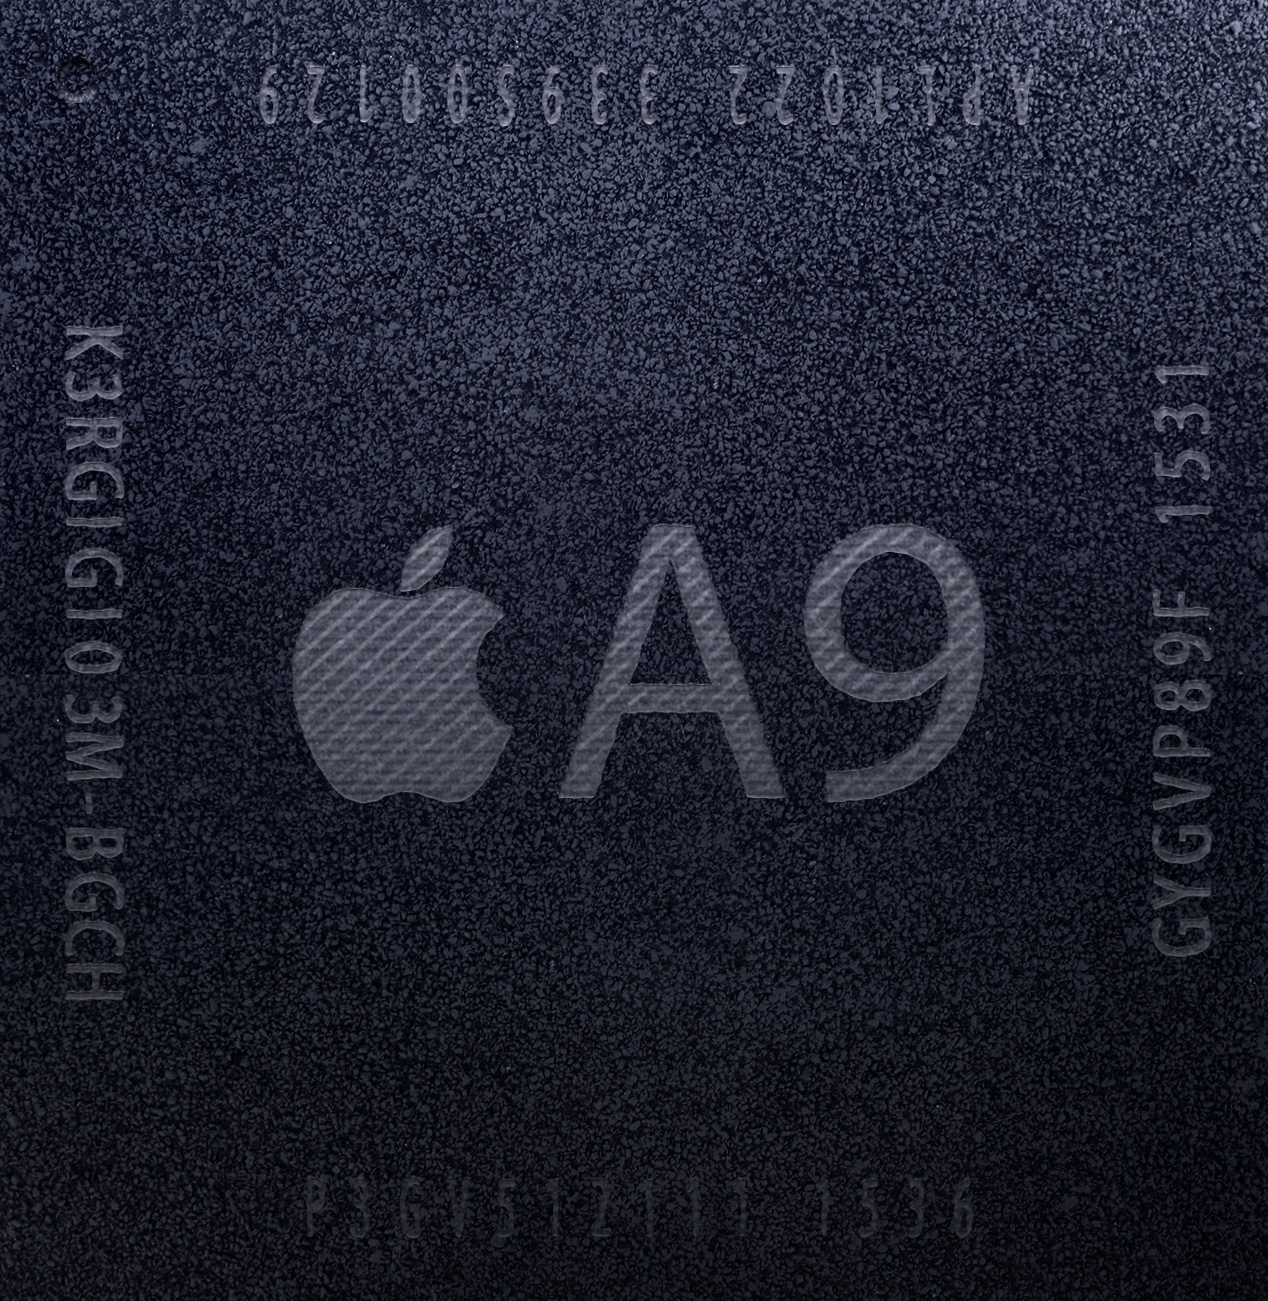 CPU Apple™ A9 fabricada por TSMC